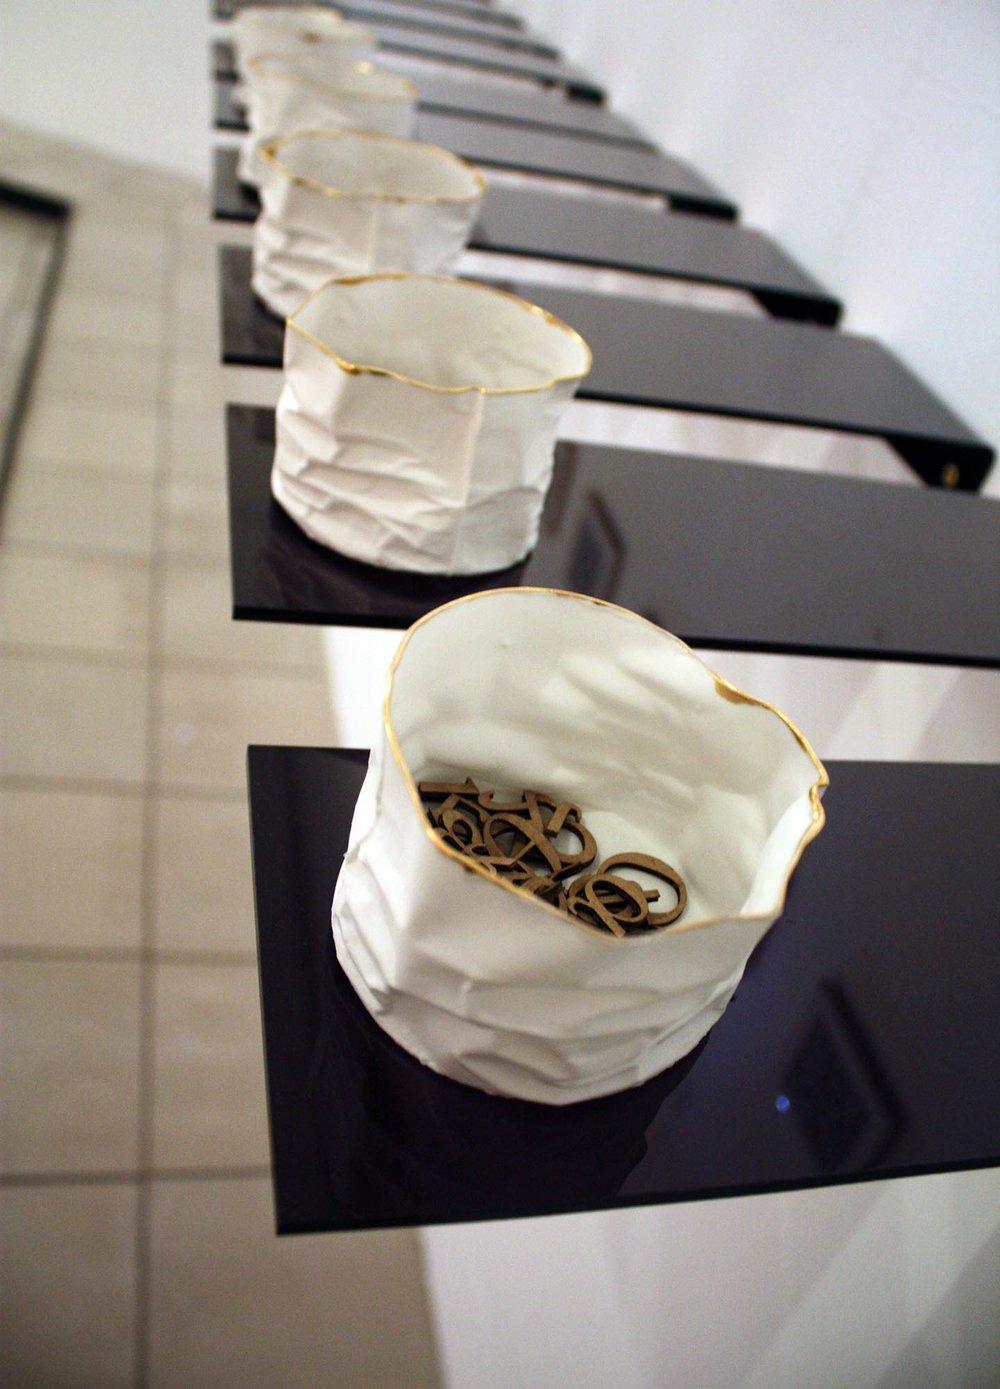 Crumpled vessels, from 'Its all Greek to me' by Manos Kalamenios